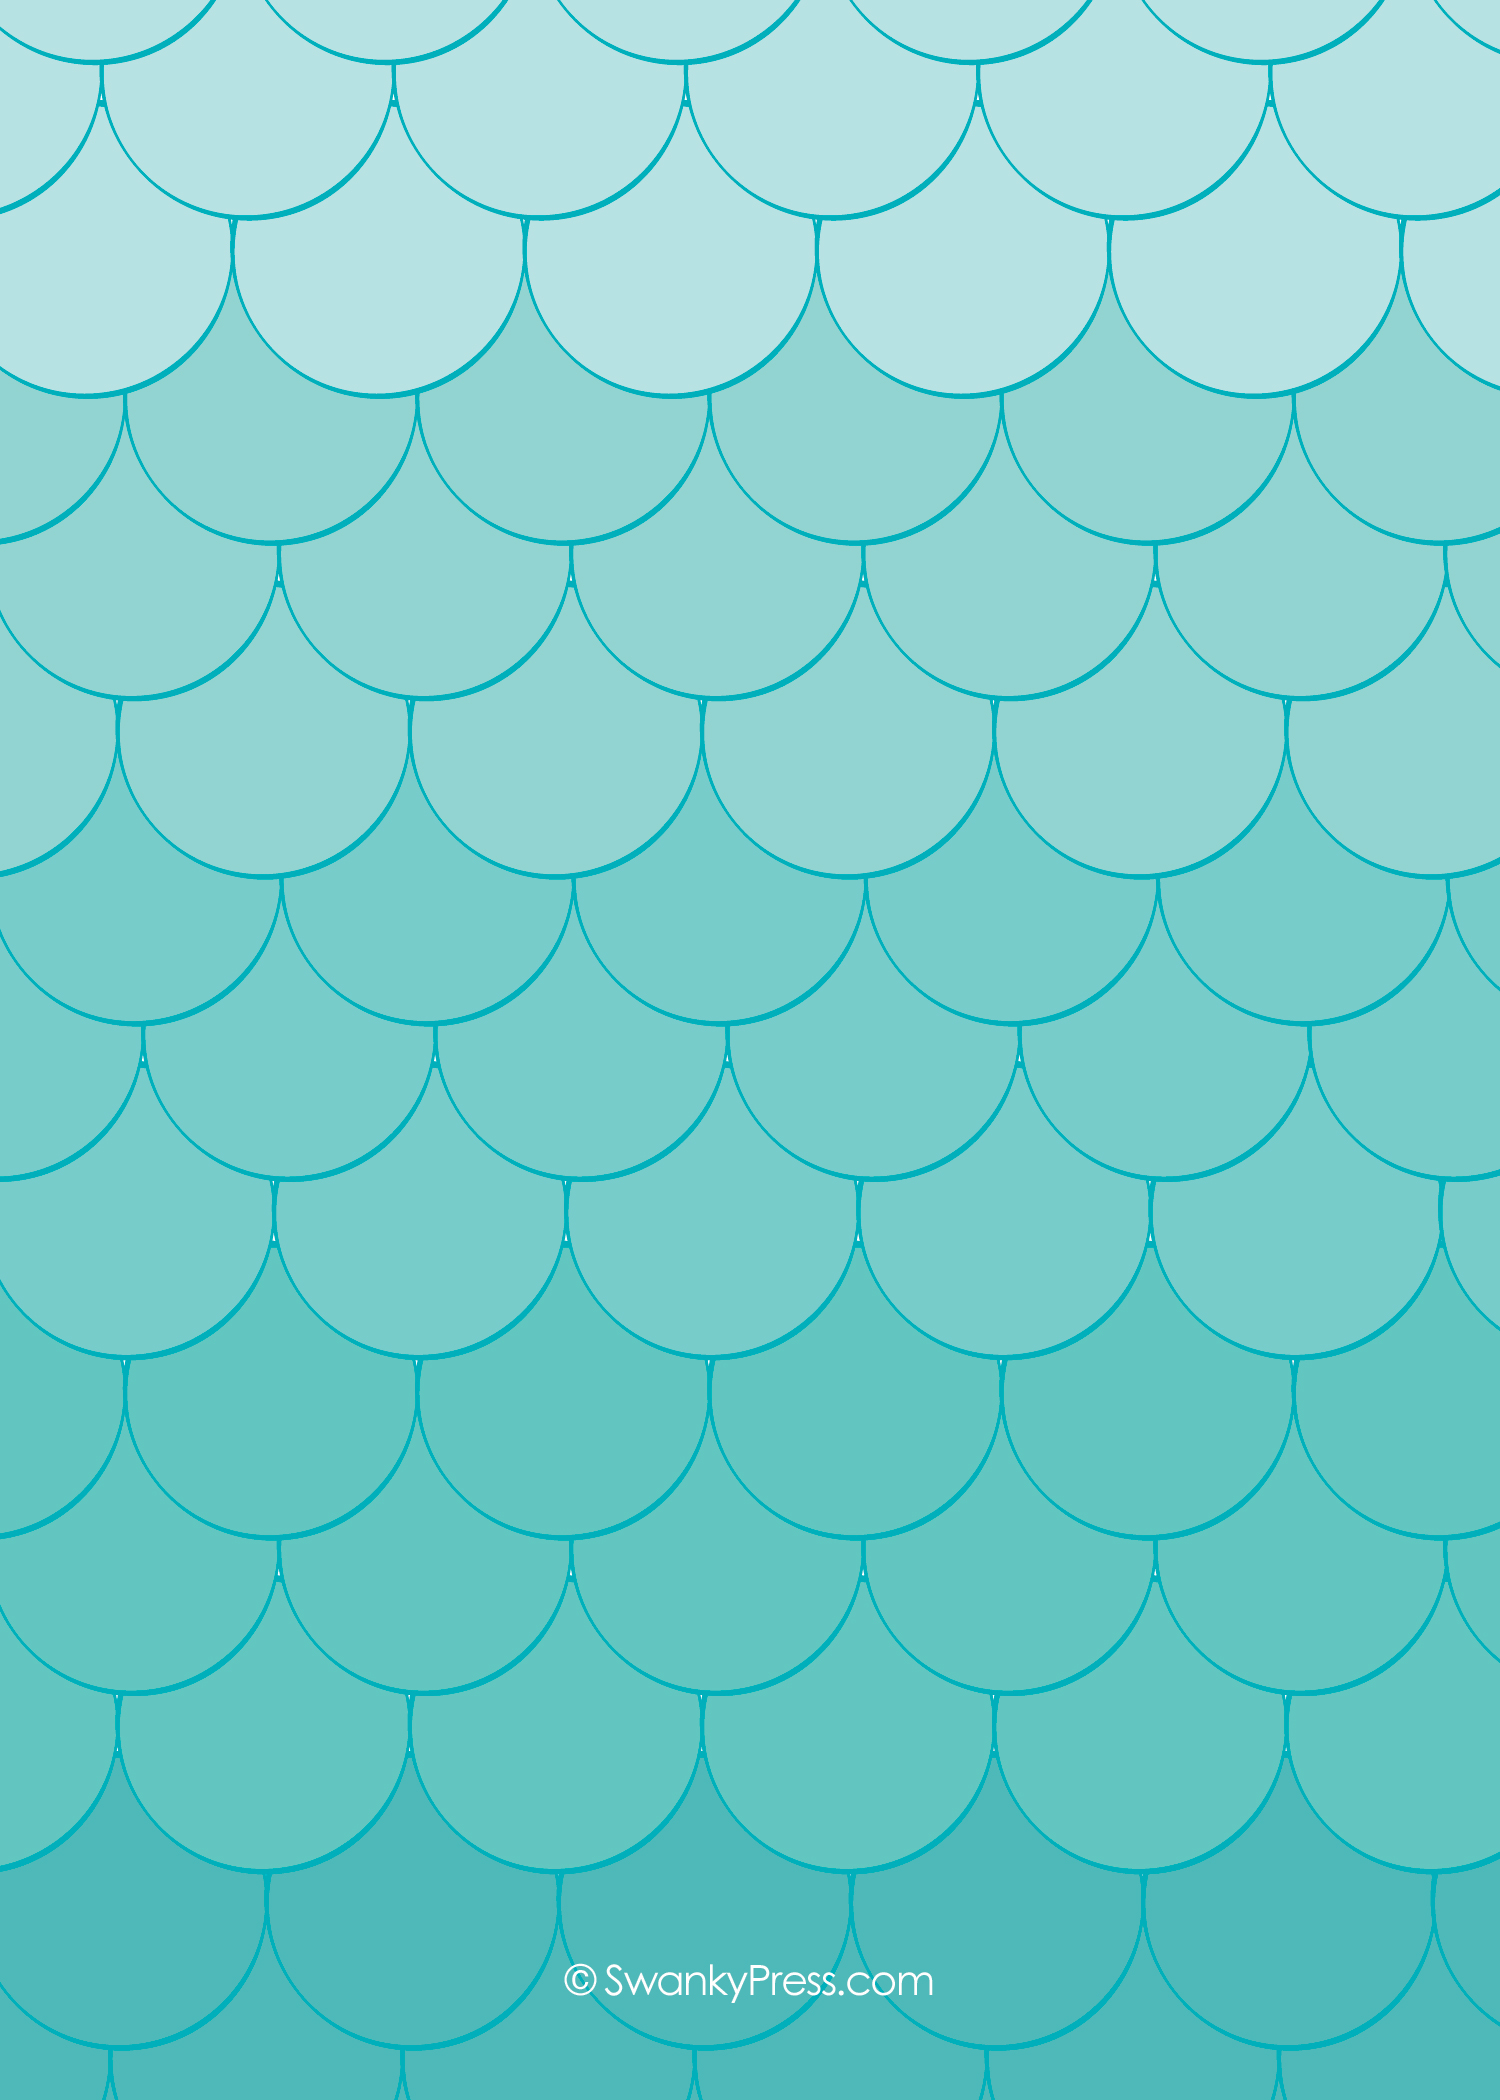 Mermaid Scale Wallpaper - WallpaperSafari